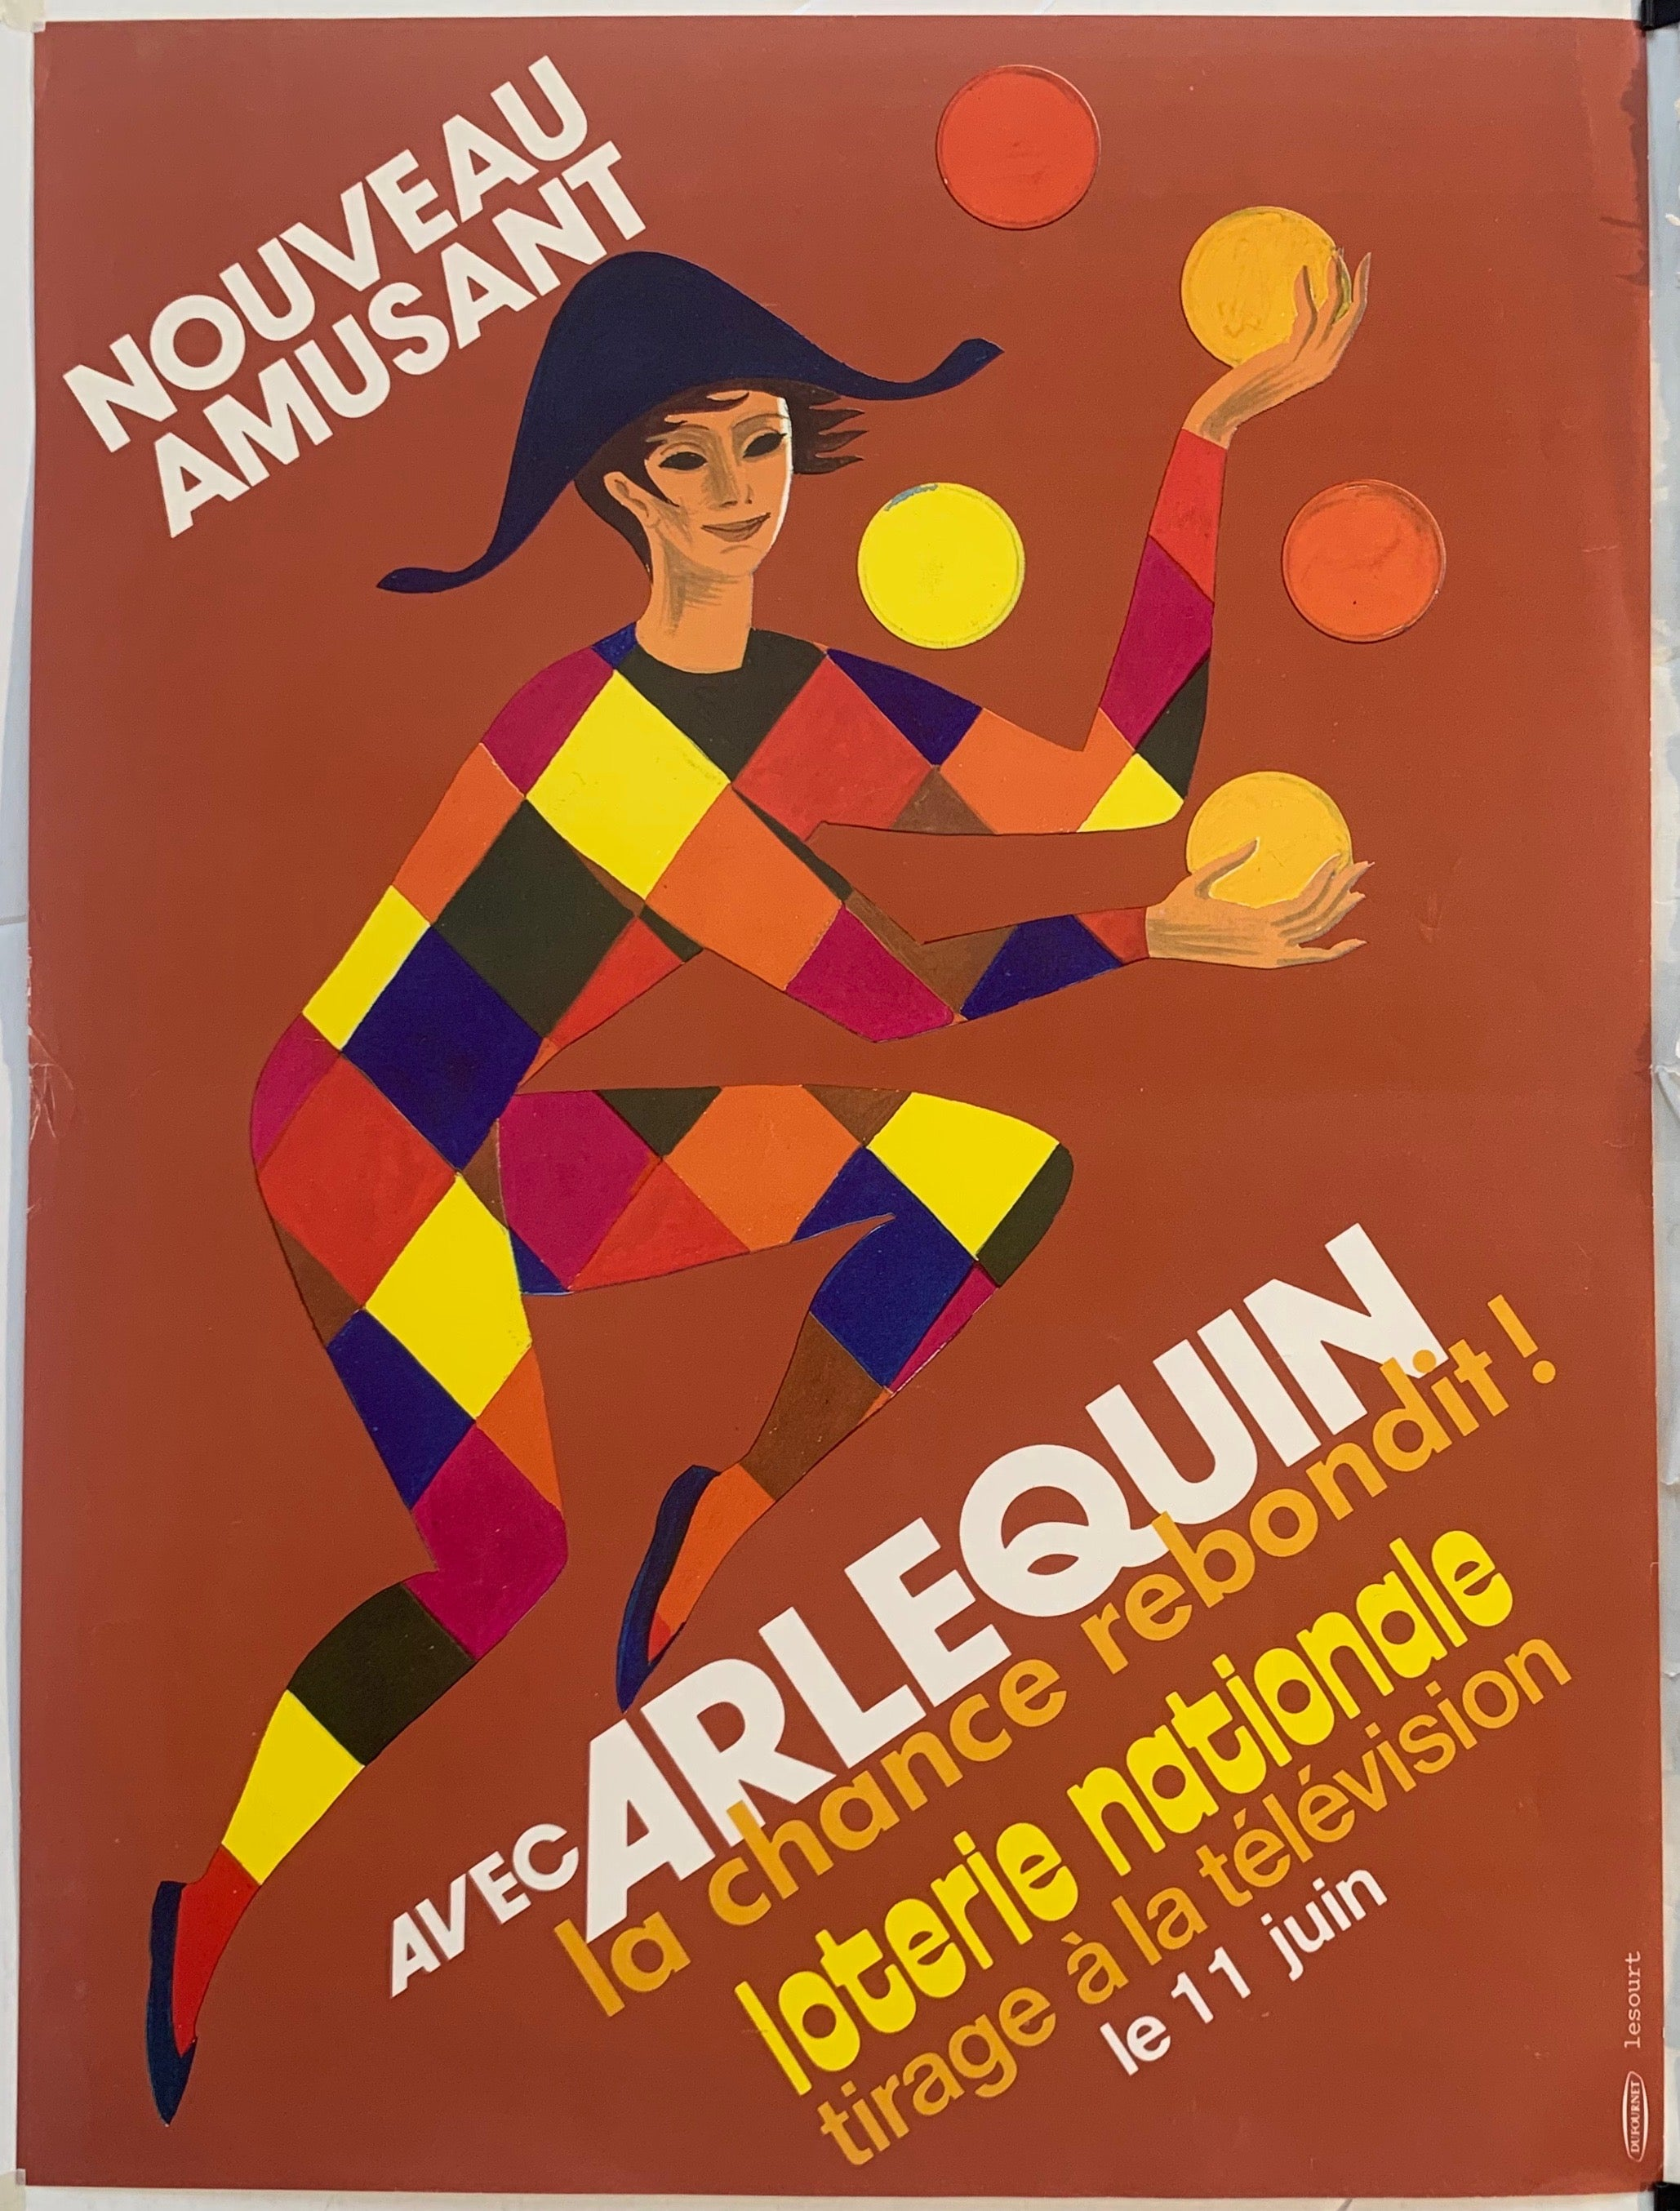 Arlequin Loterie Nationale - Juggling in Orange